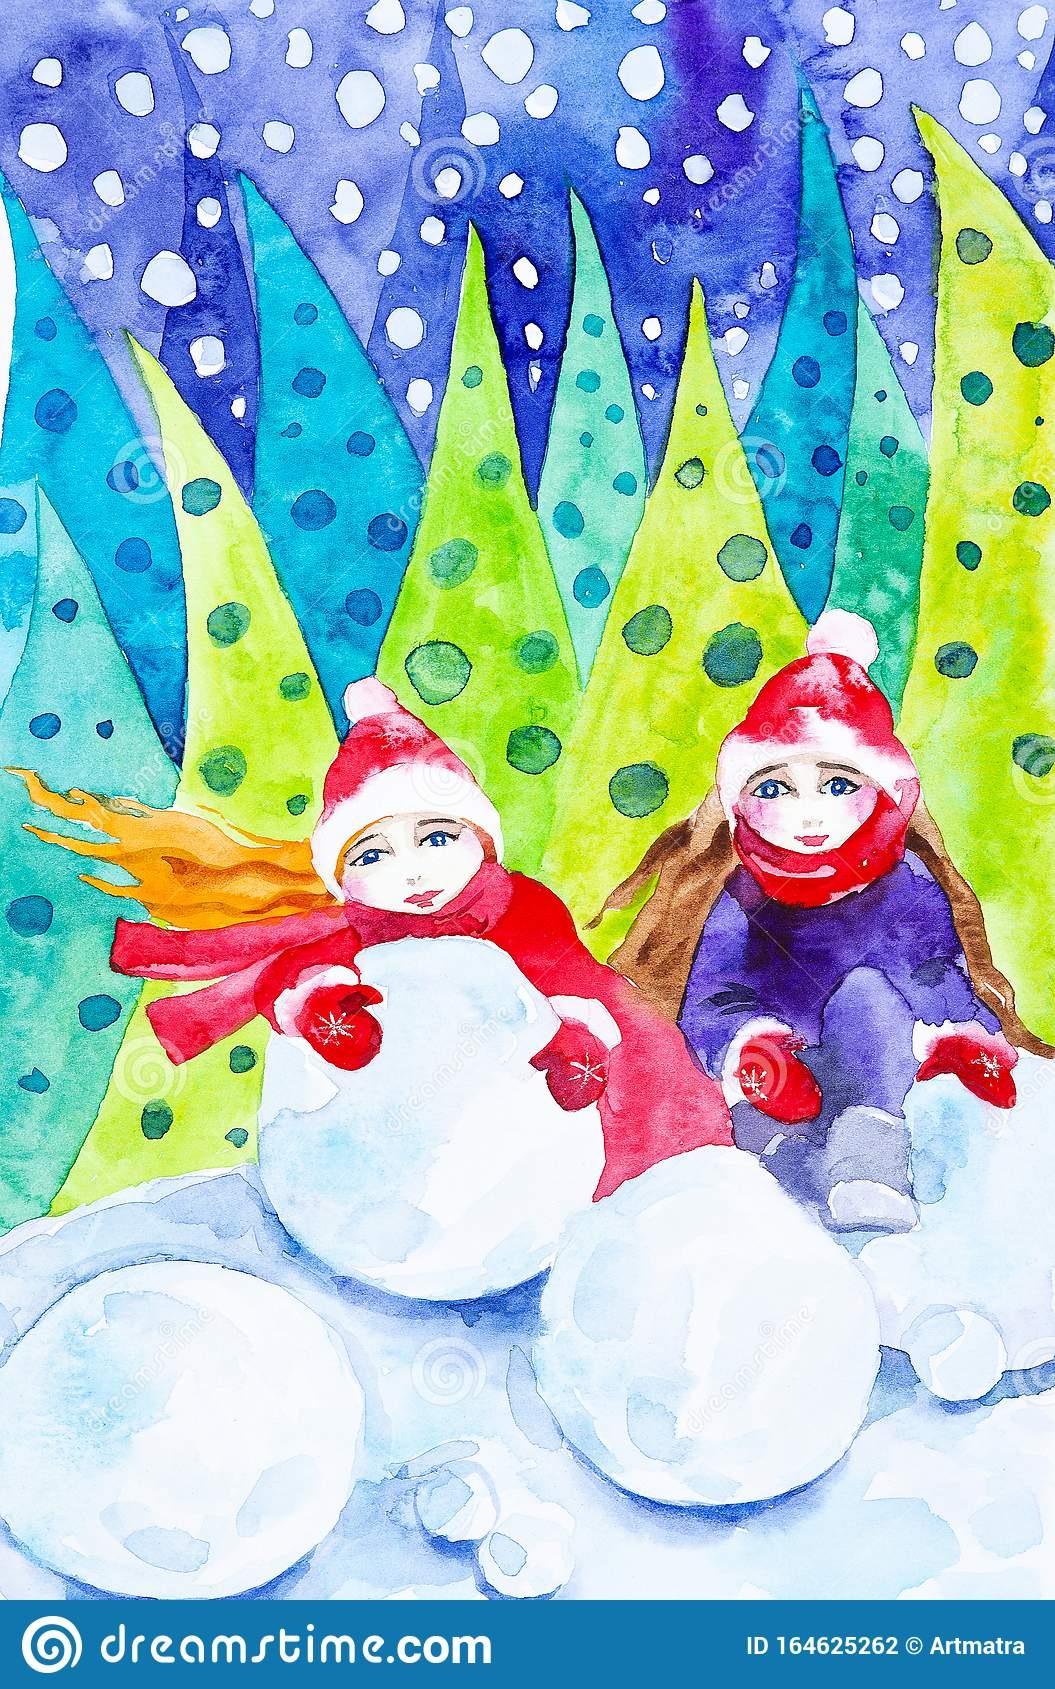 Two Girls Roll Snowballs For A Snowman In The Christmas